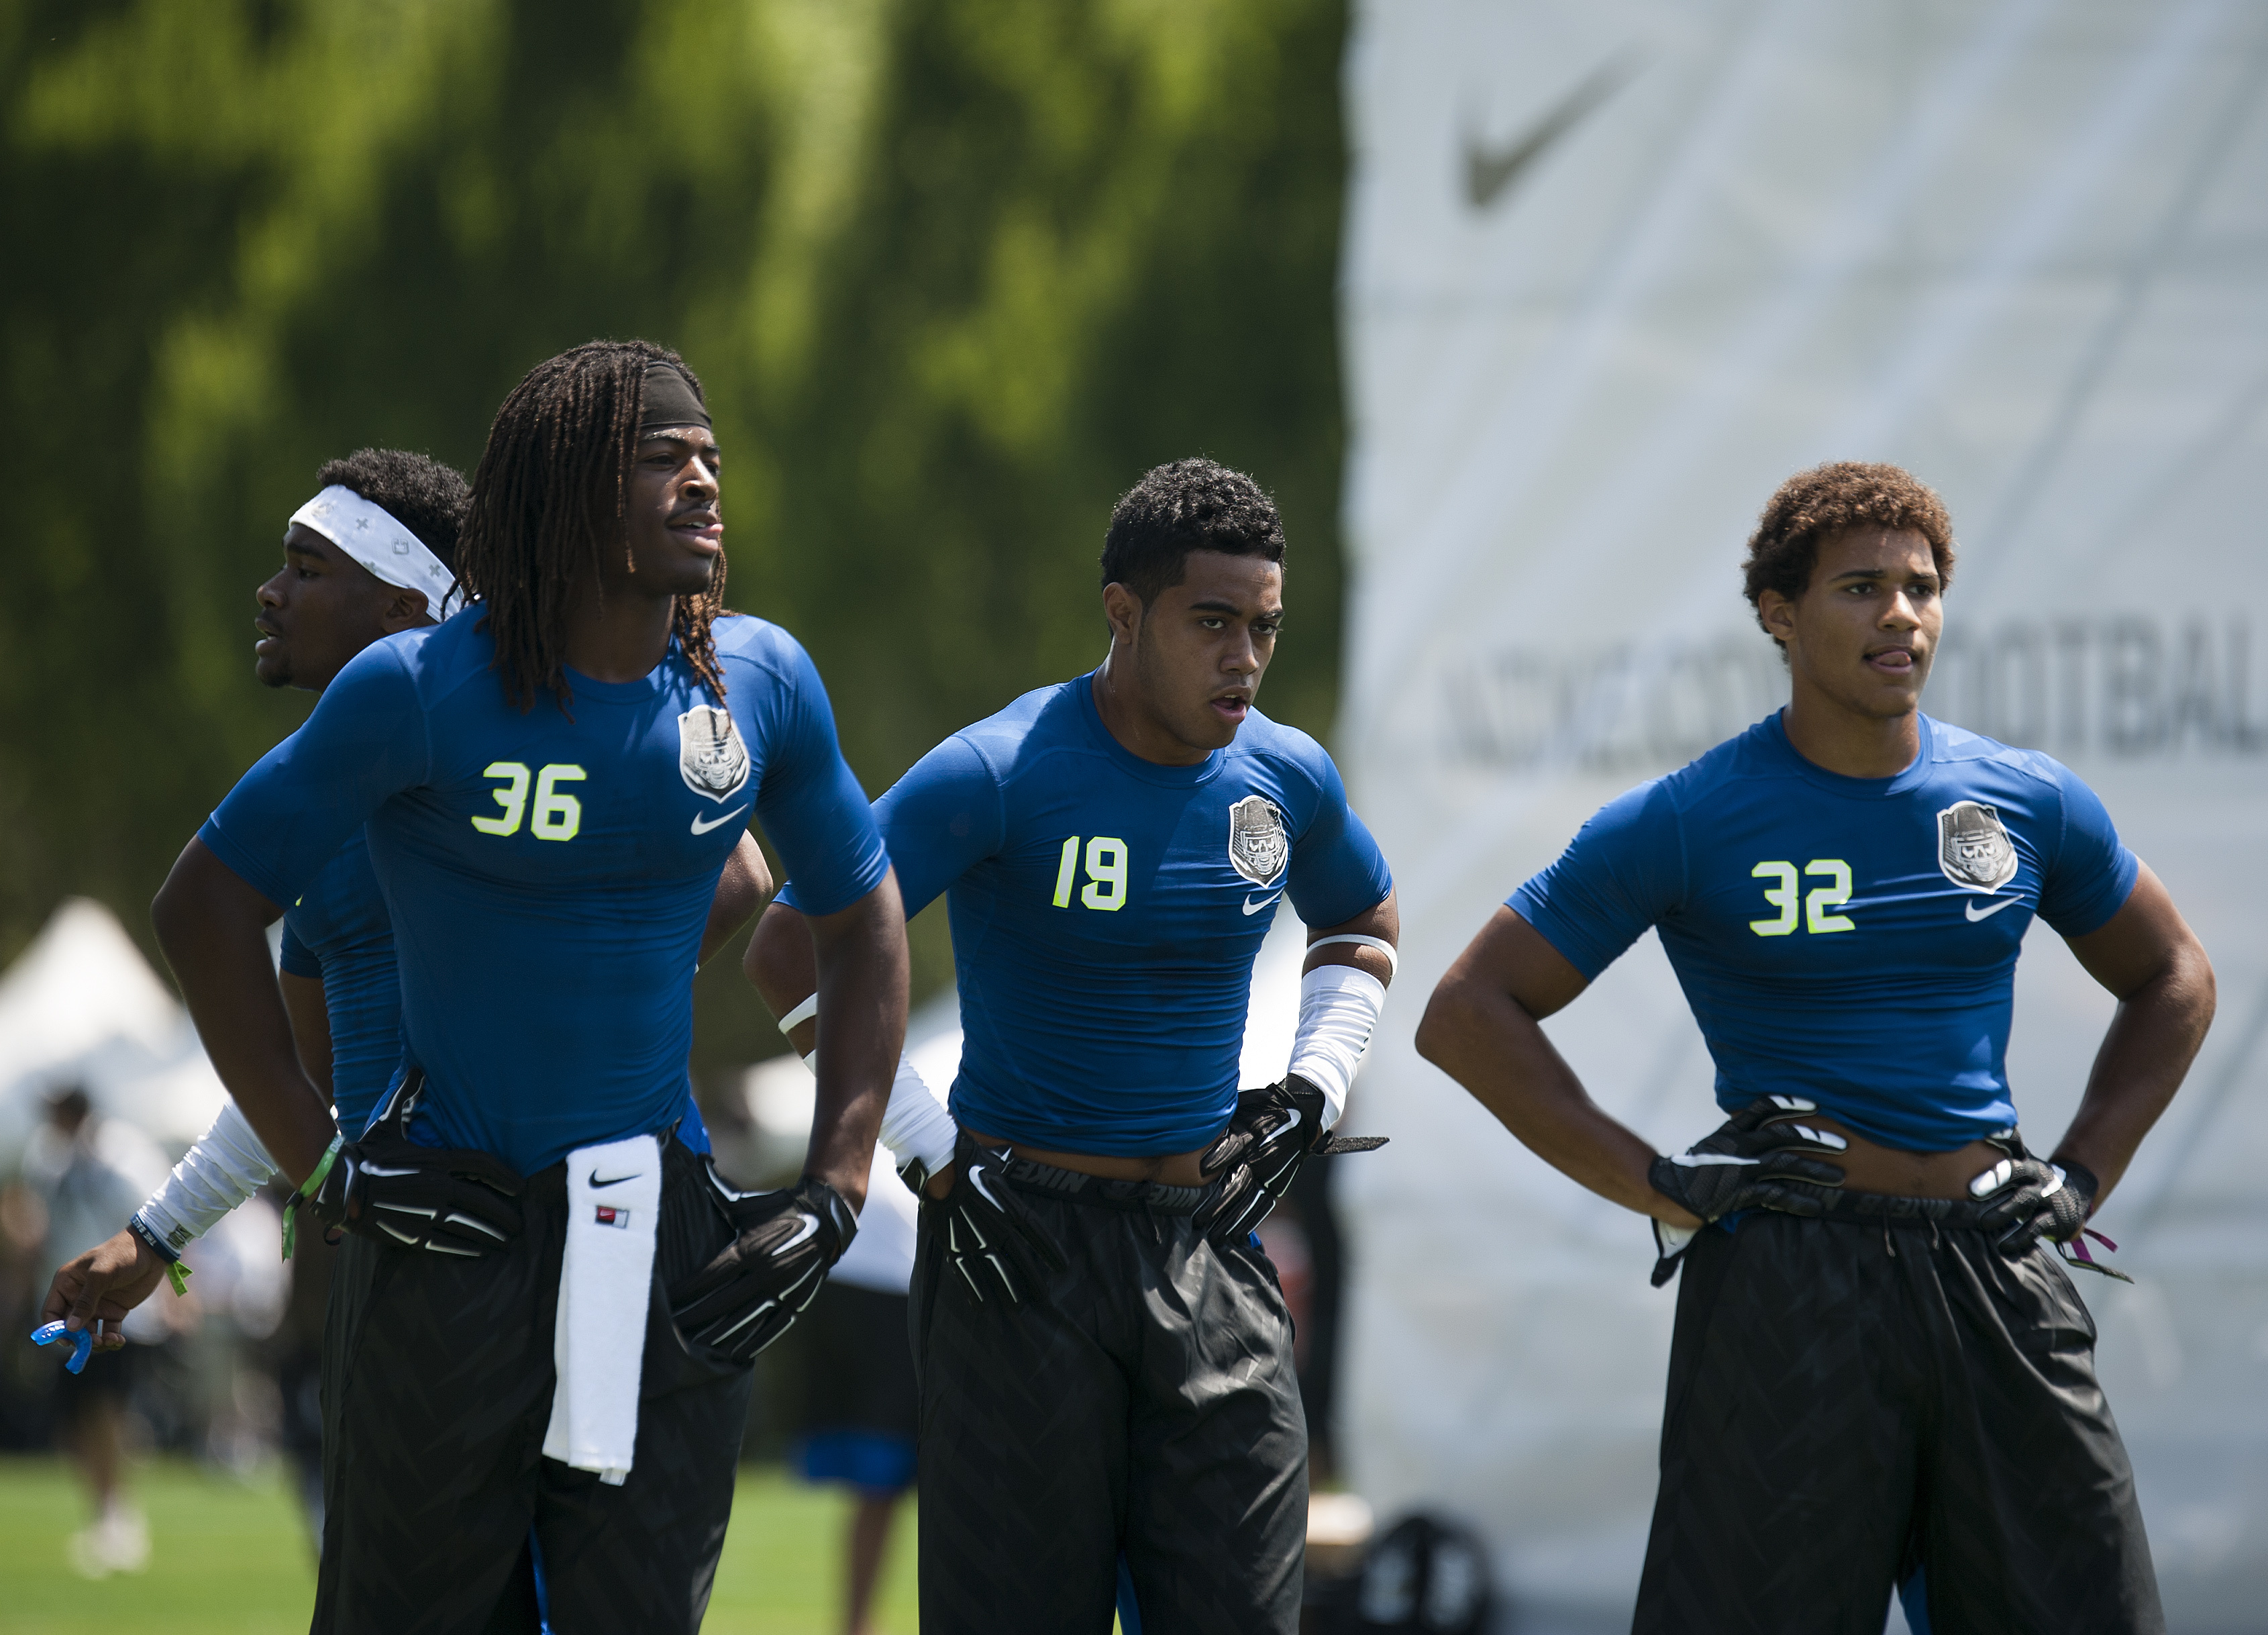 Running backs Najee Harris (36), Vavae Malepeai (19) and Travis Homer (32) wait to participate in a running back drill during The Opening (Photo: Godofredo Vasquez, USA TODAY Sports)